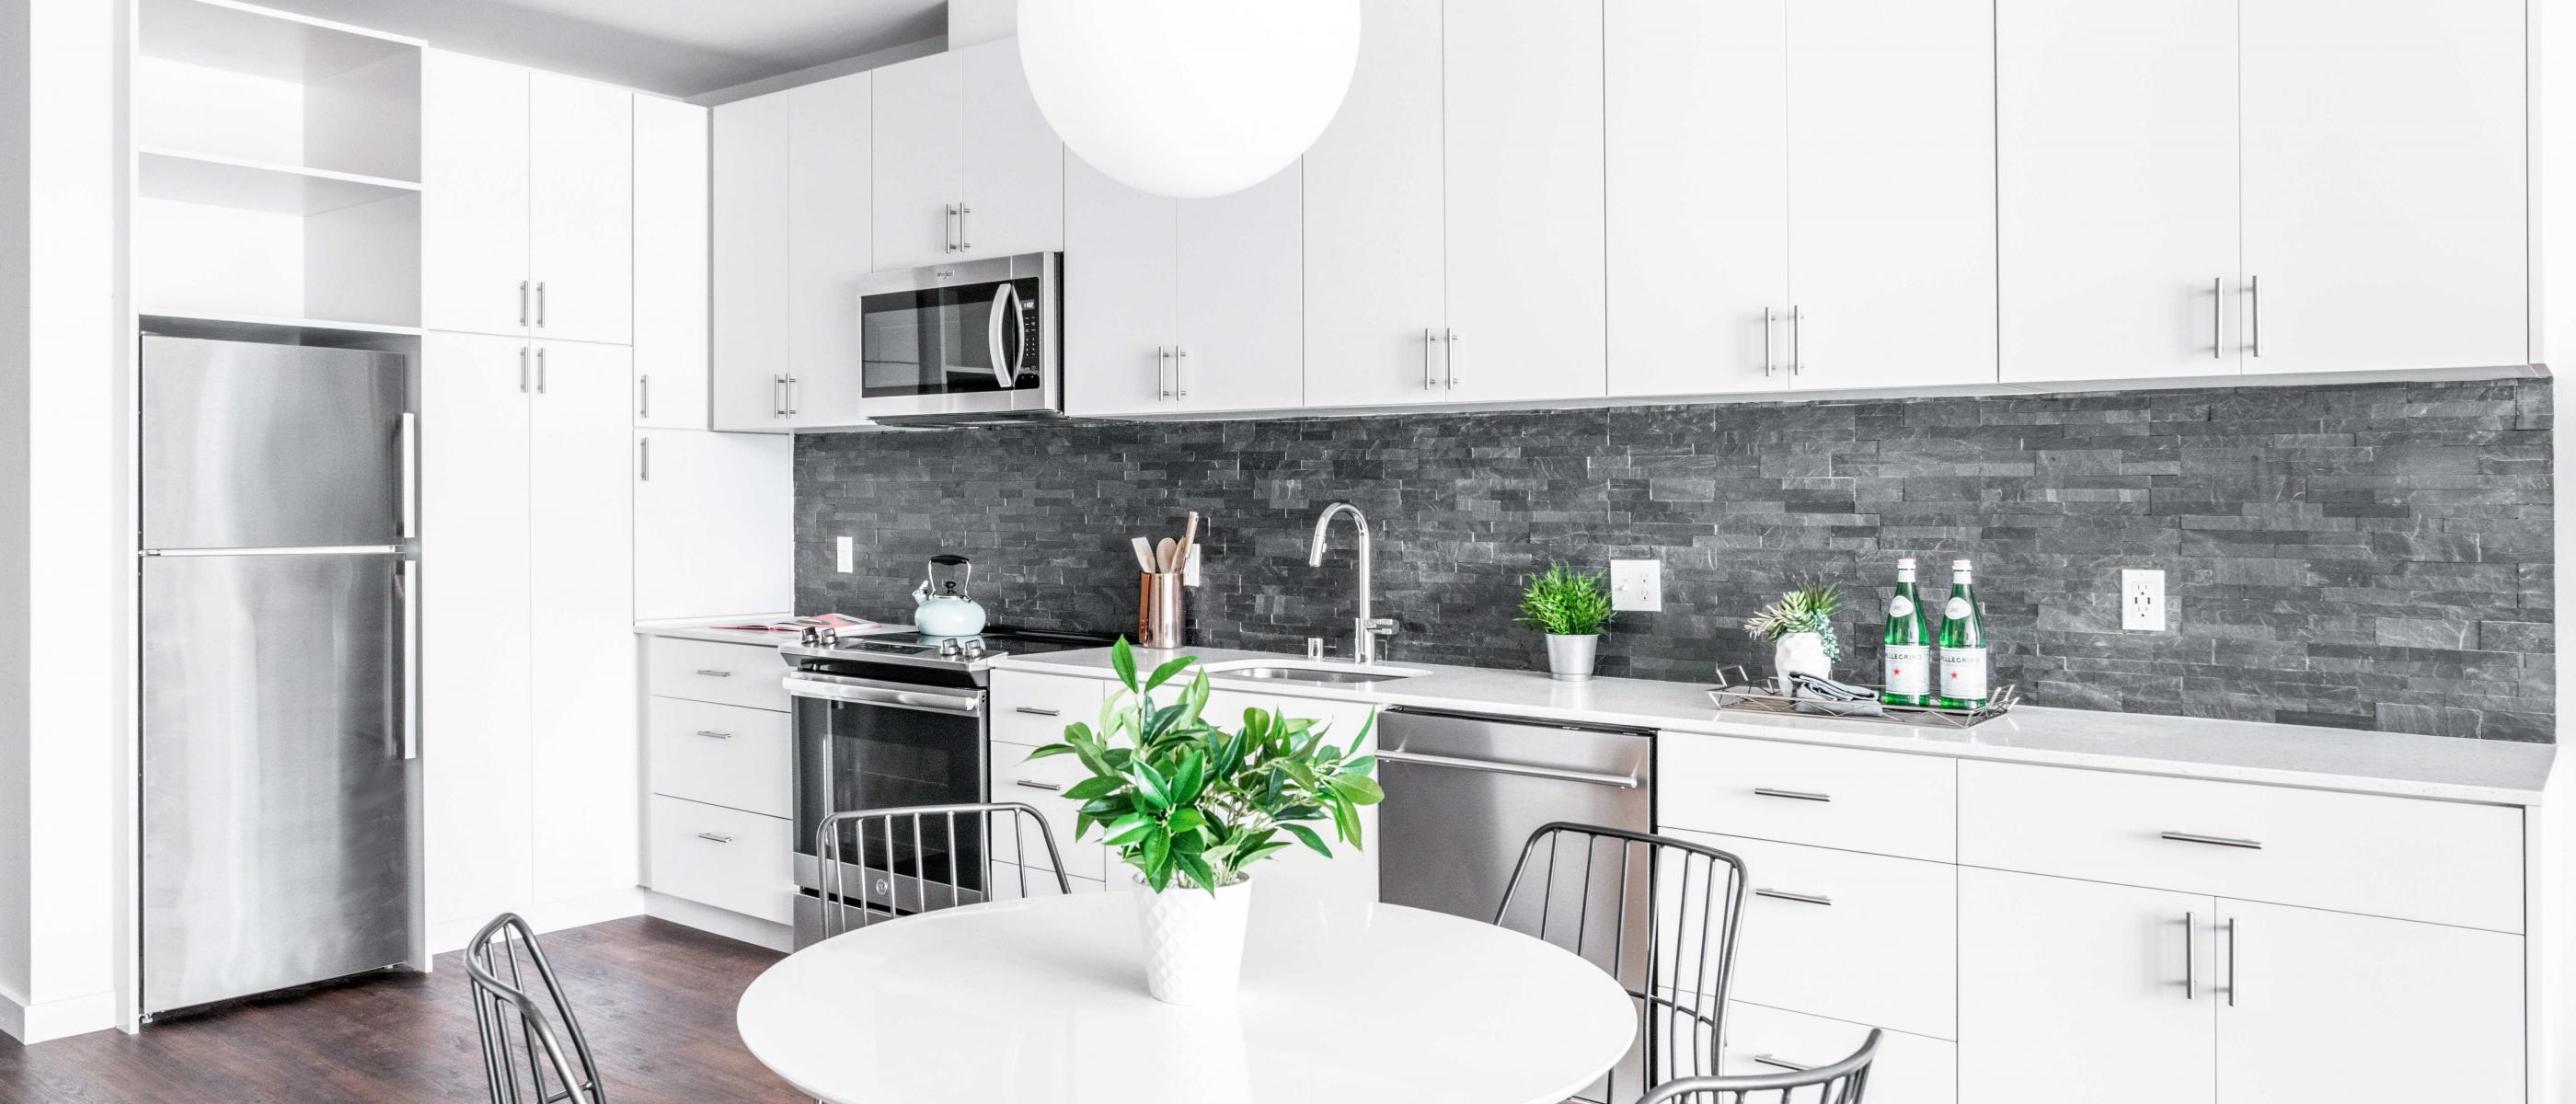 MULTIFAMILY KITCHEN CABINETS